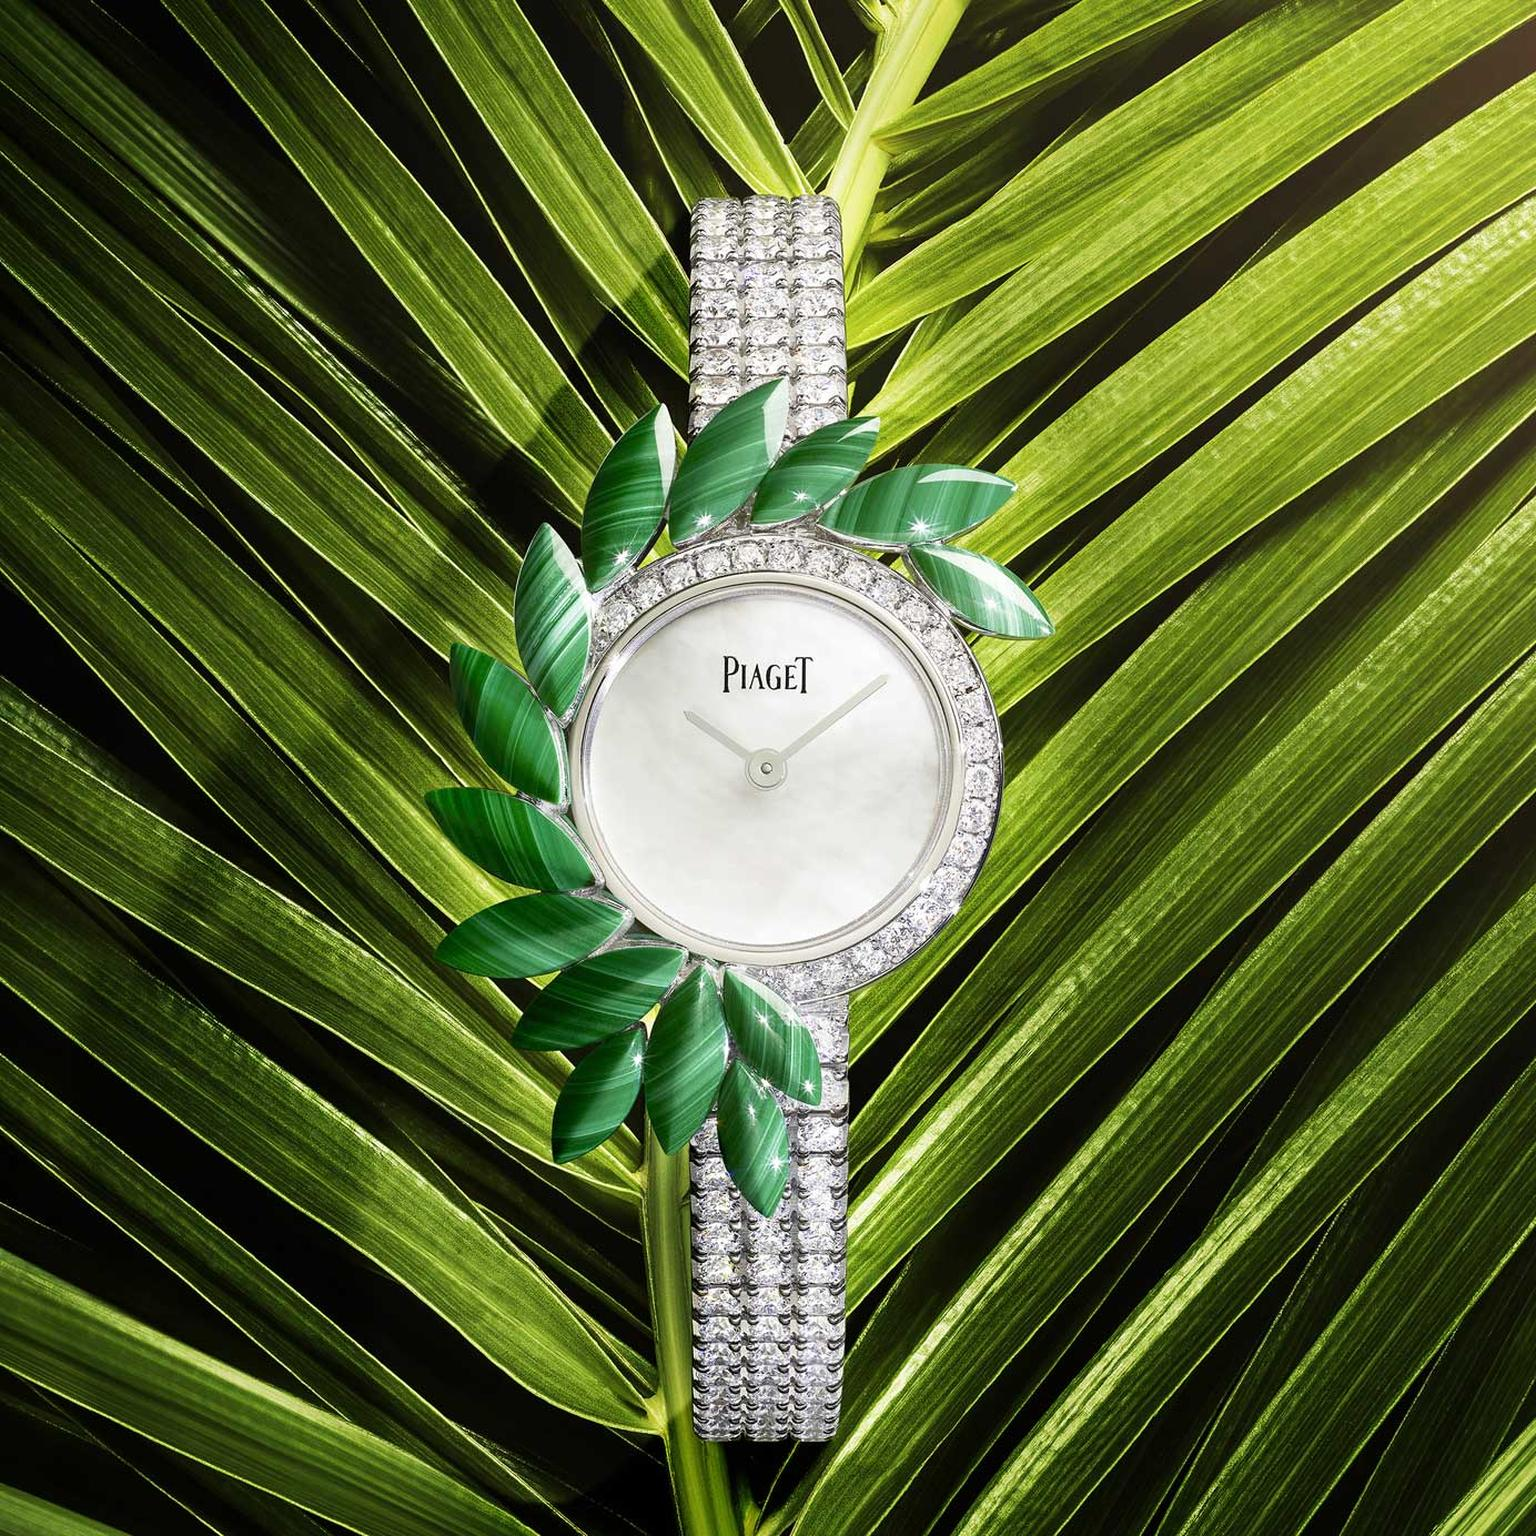 Piaget Golden Oasis Vegetal Lace Watch